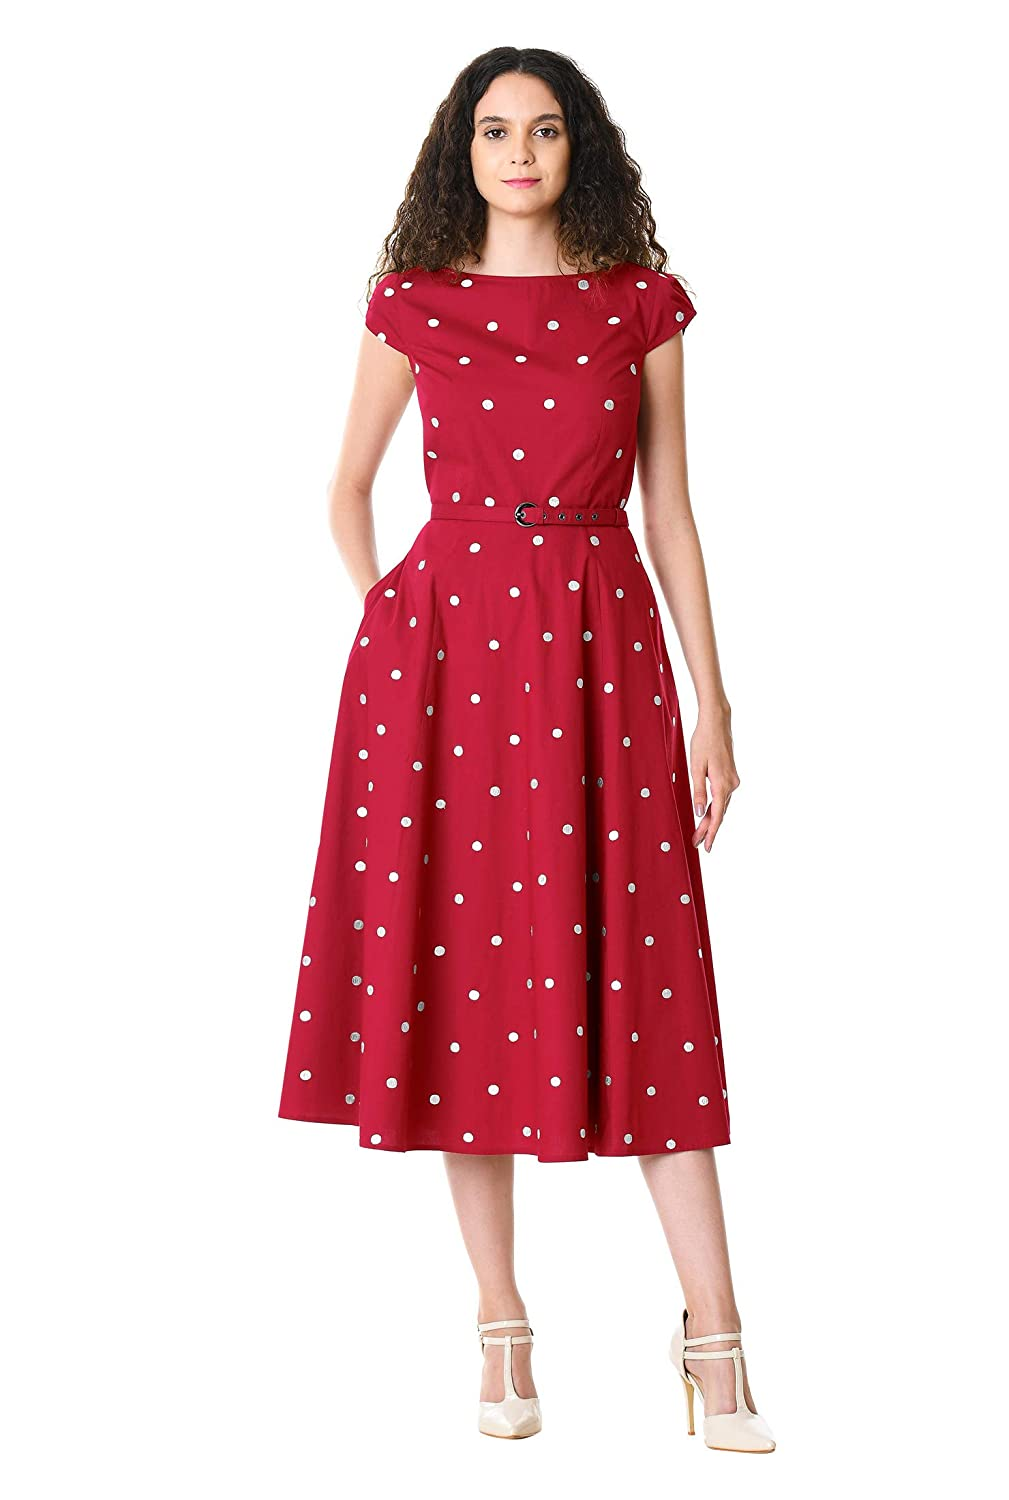 1950s Swing Dresses | 50s Swing Dress eShakti Womens Polka dot Embellished Cotton poplin Dress $74.95 AT vintagedancer.com